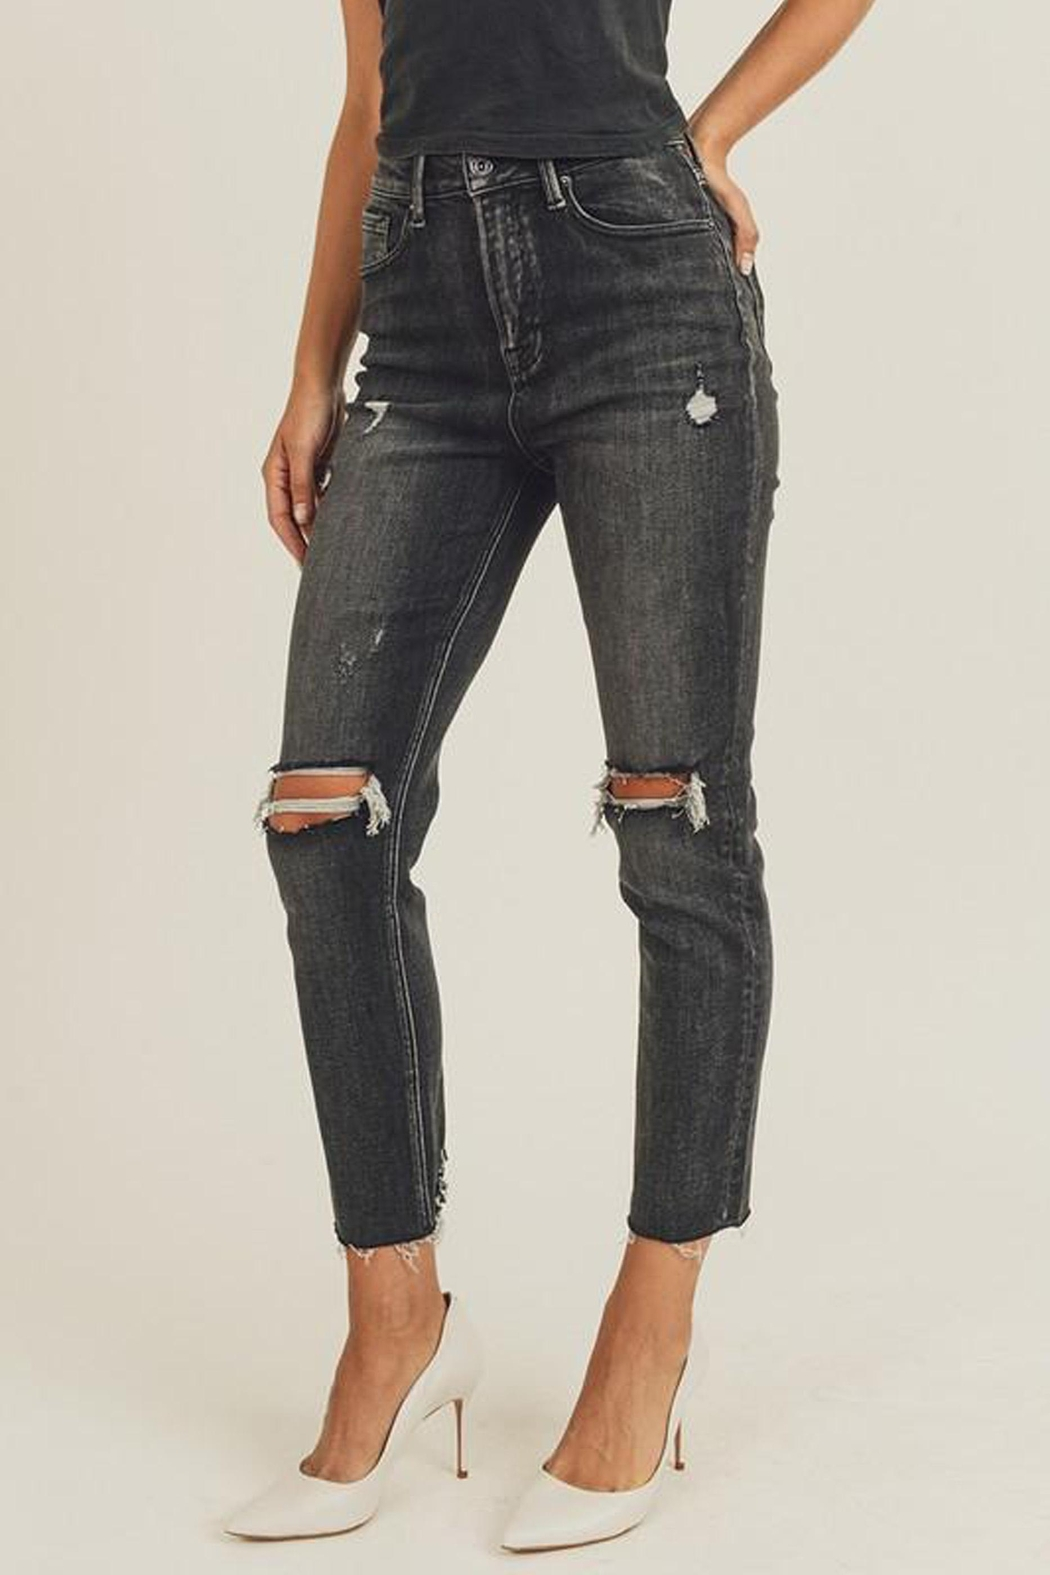 Risen Jeans  Black-Vintage-Wash Distressed Denim - Front Full Image